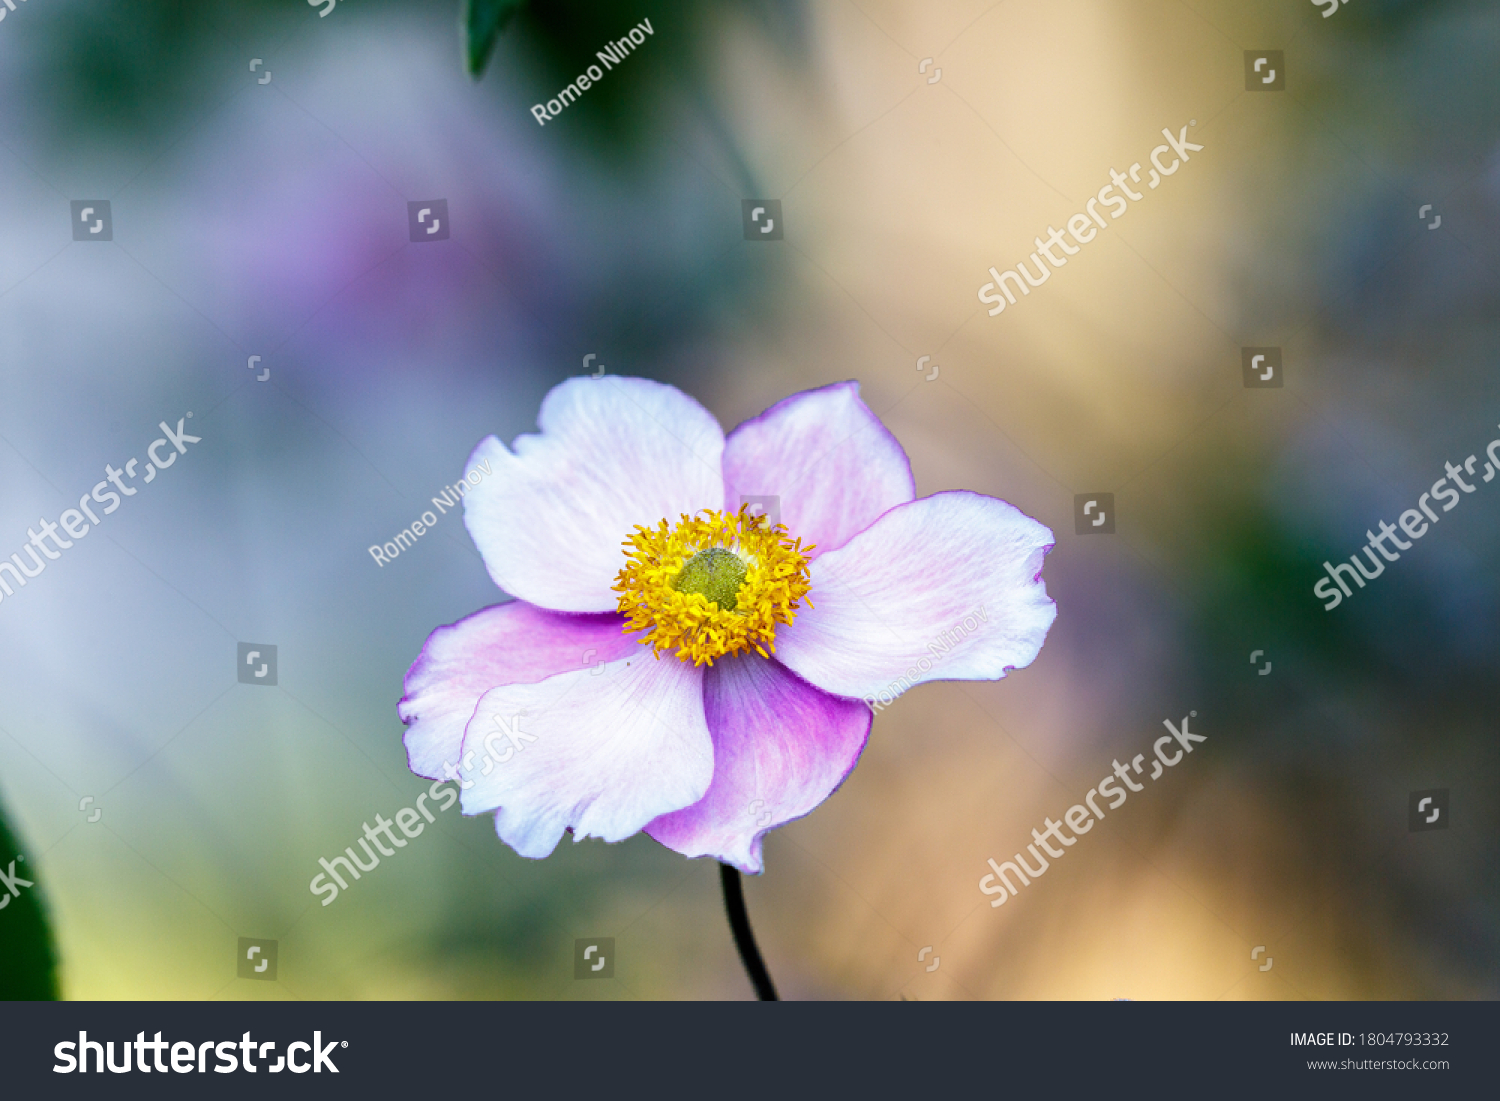 stock-photo-blooming-flower-in-the-garde